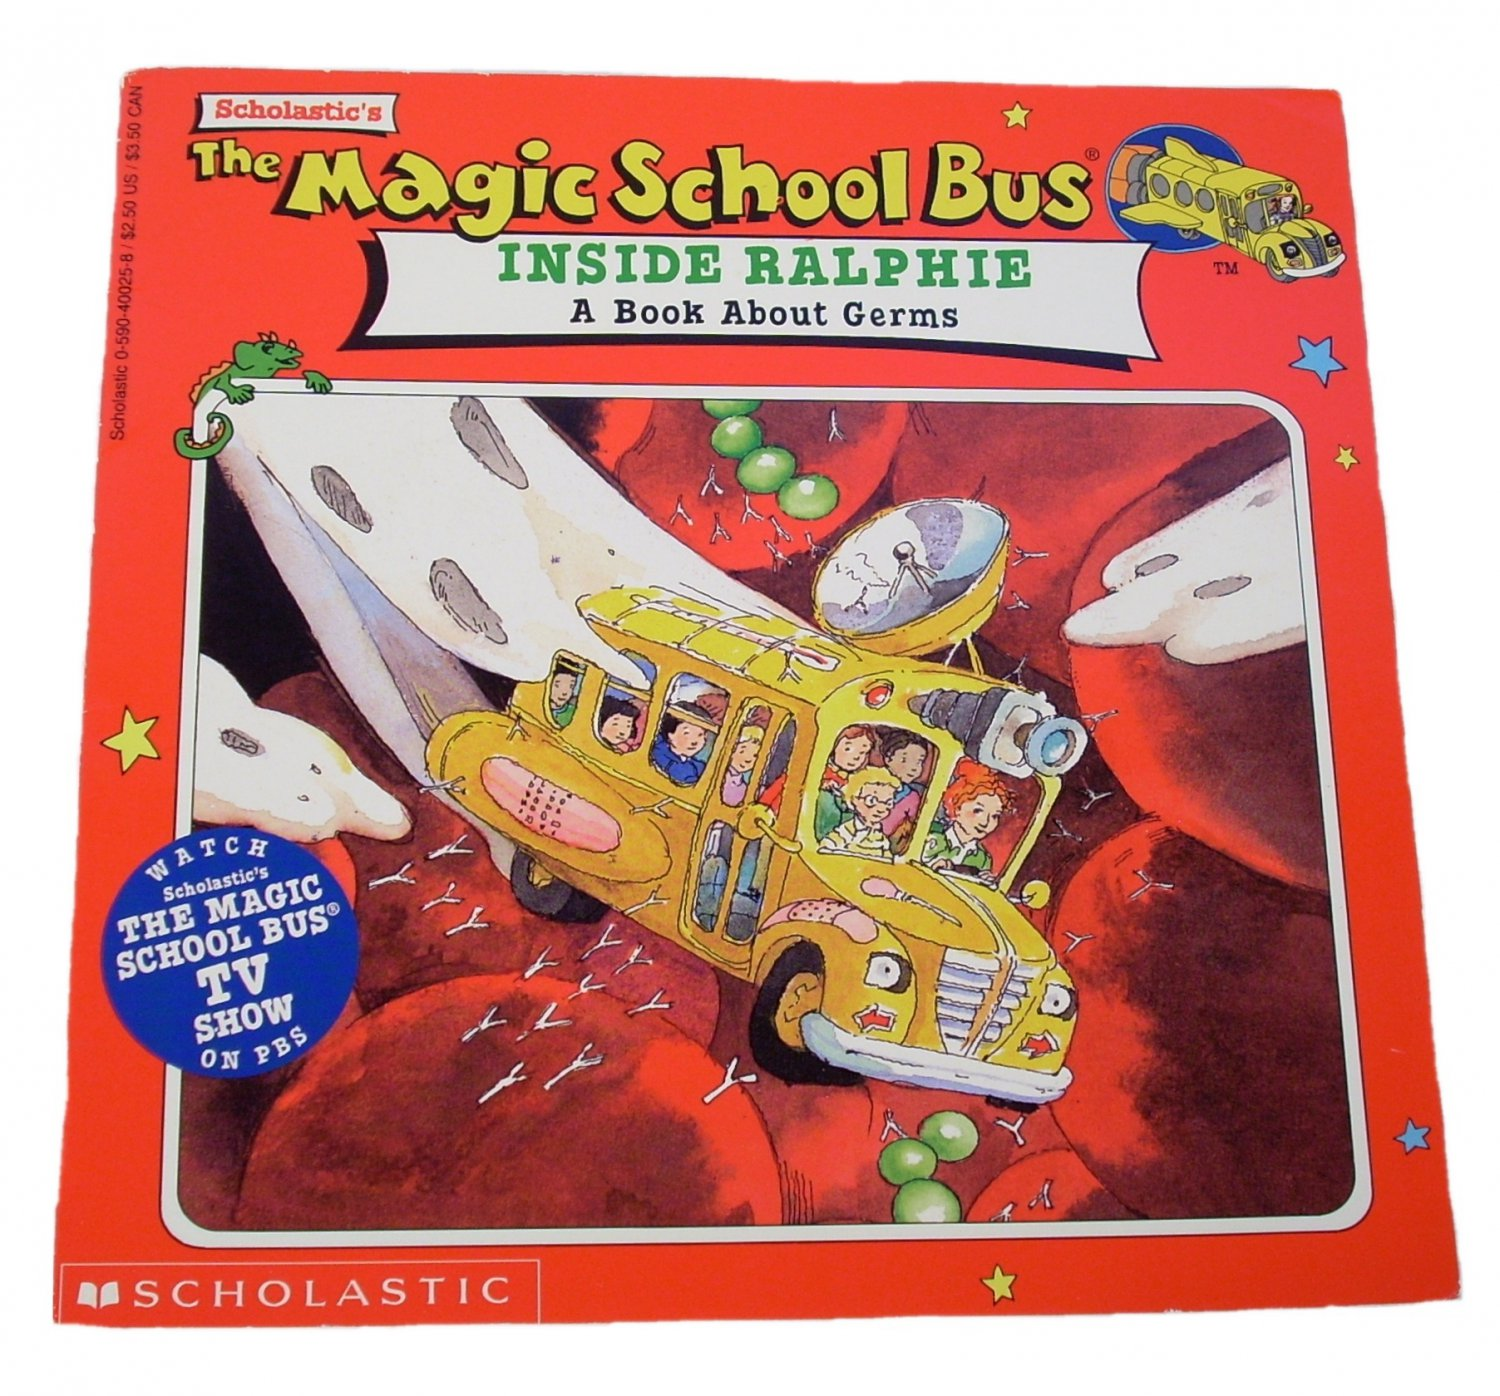 The Magic School Bus Inside Ralphie By Joanna Cole